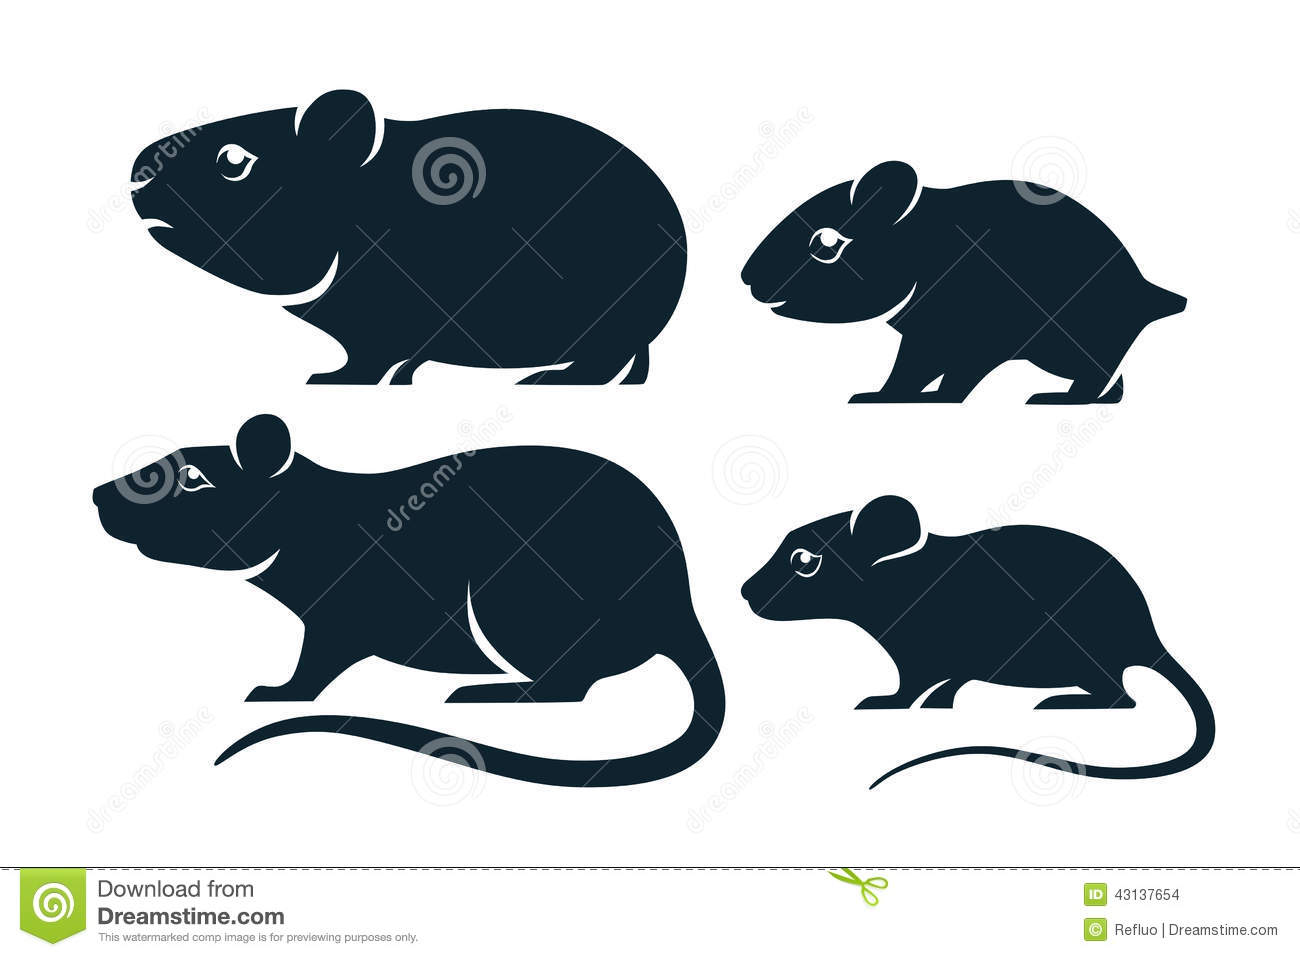 Four silhouettes of rodents: Guinea pig hamster, rat and mouse.